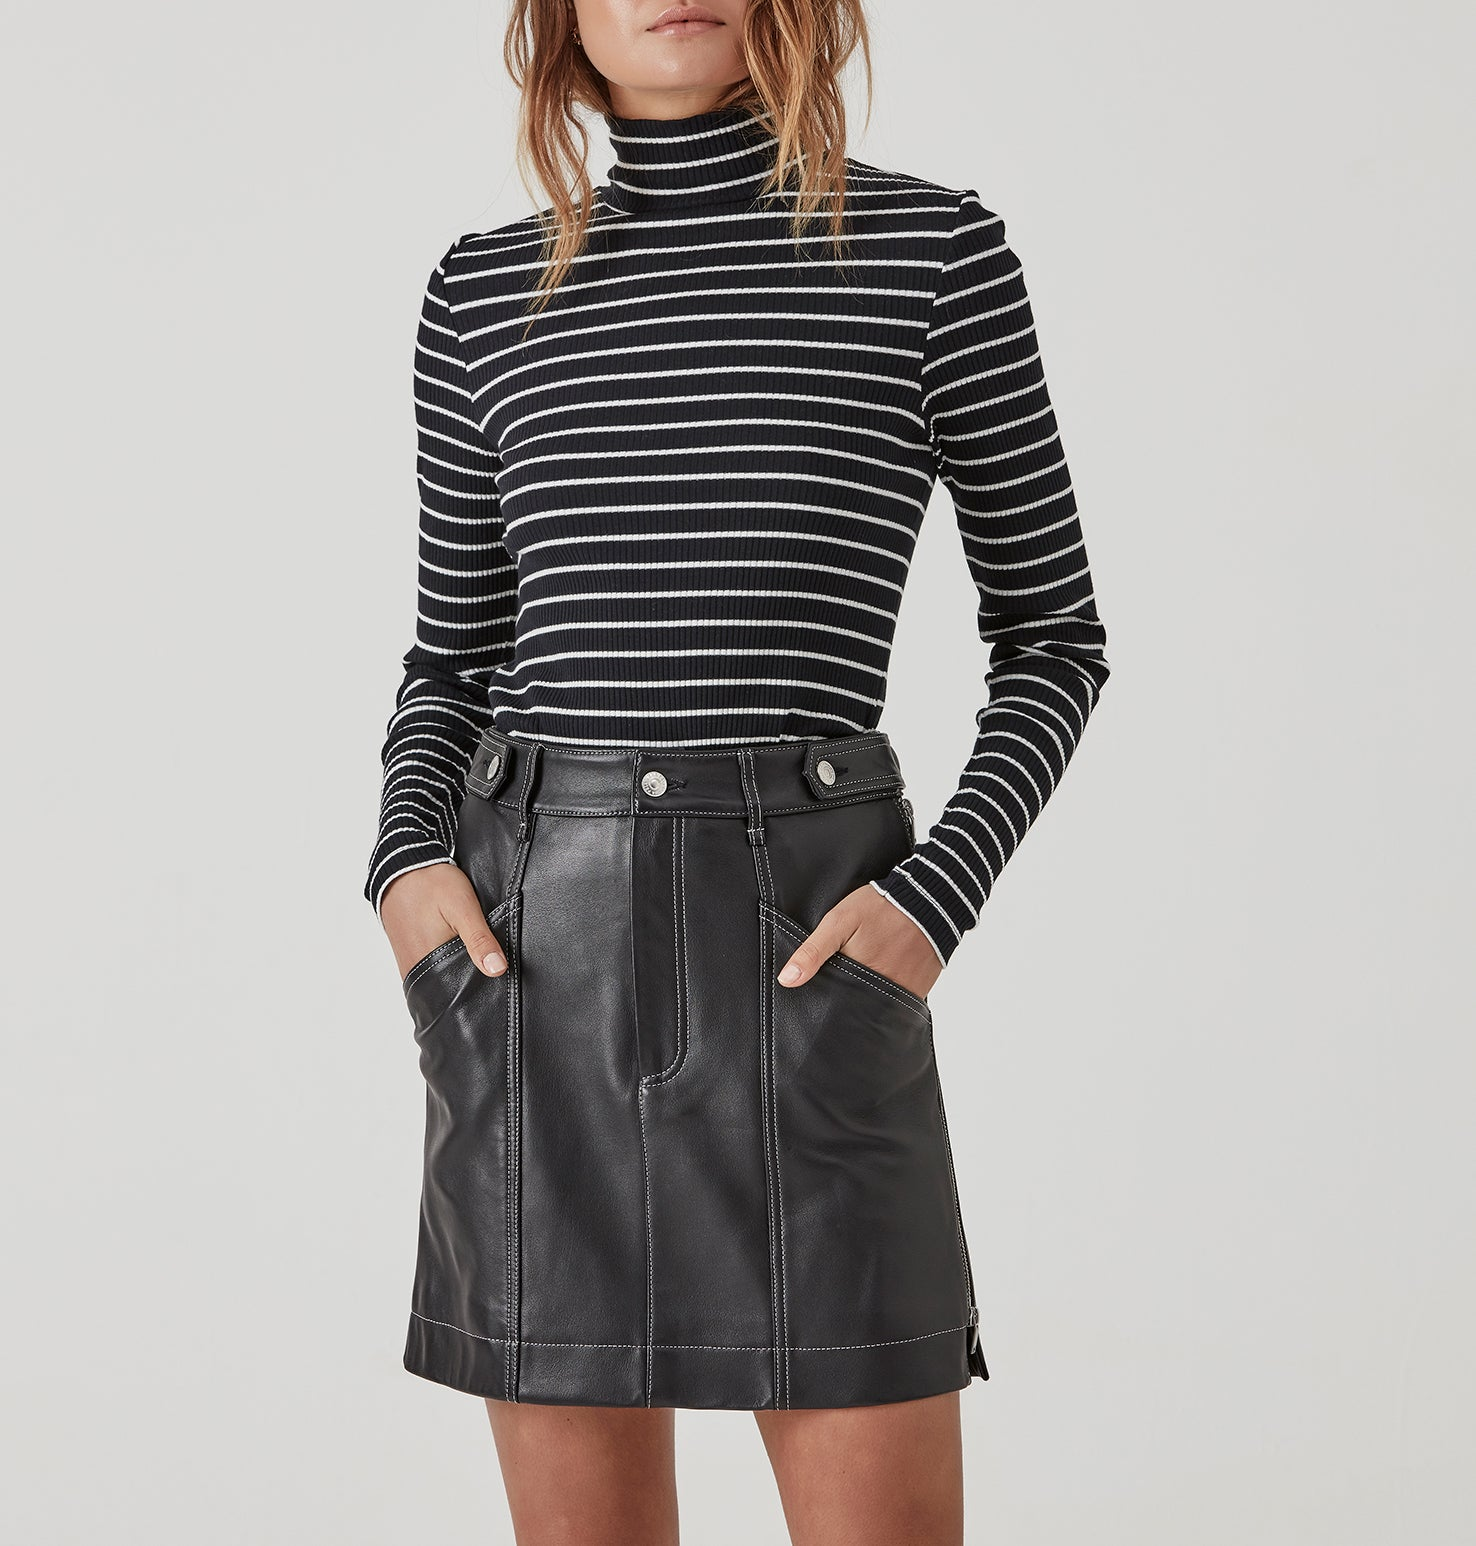 Eden Mini skirt